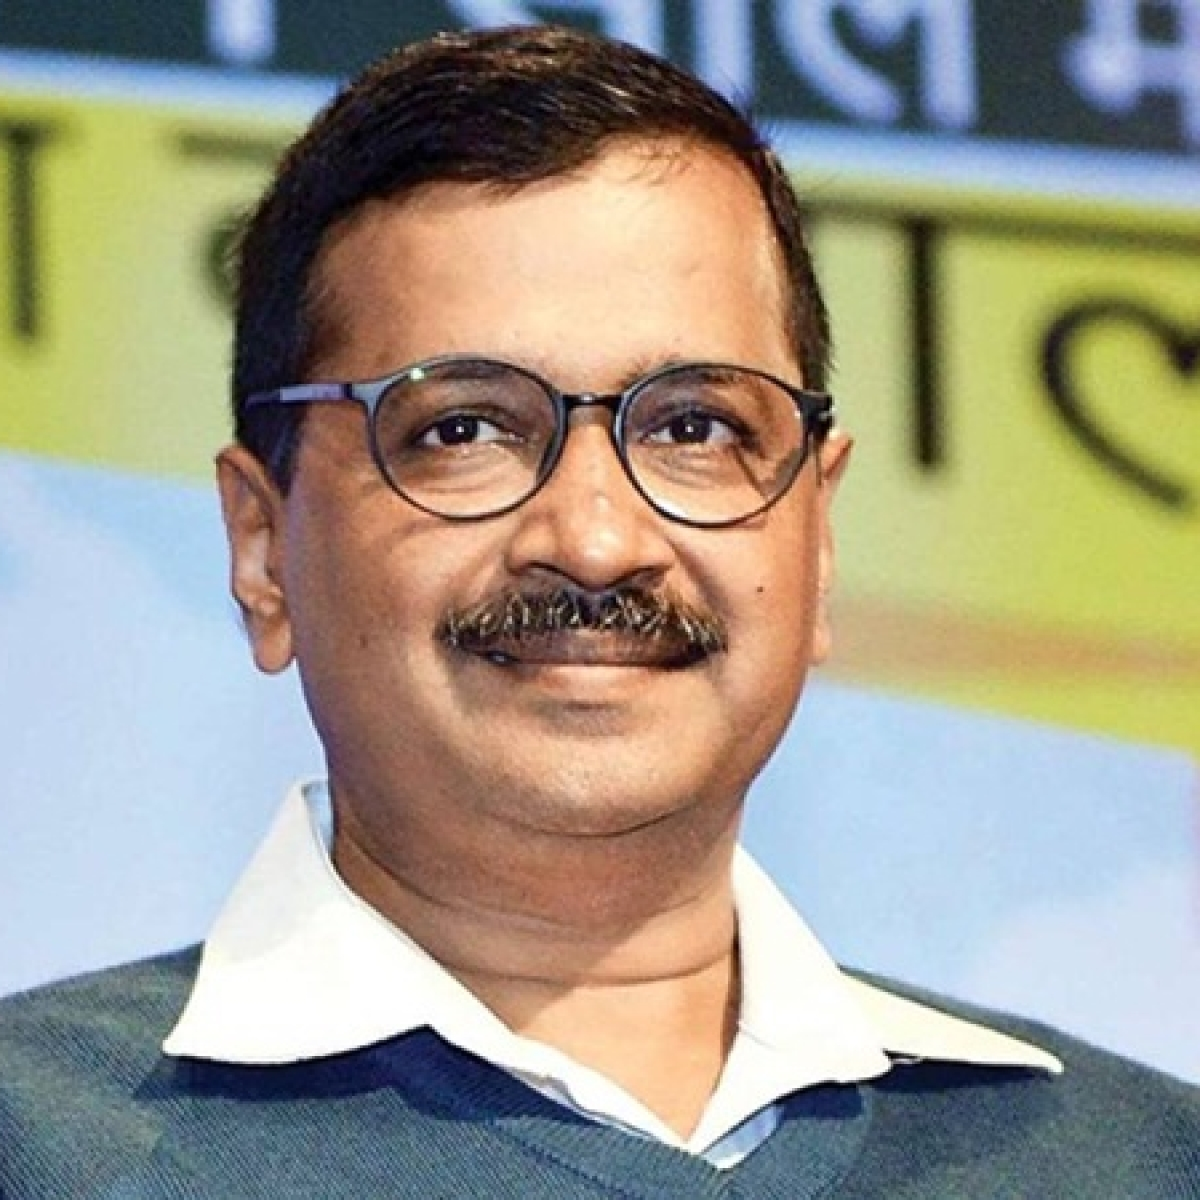 Reducing pollution in Delhi: AAP government seeks suggestion from people